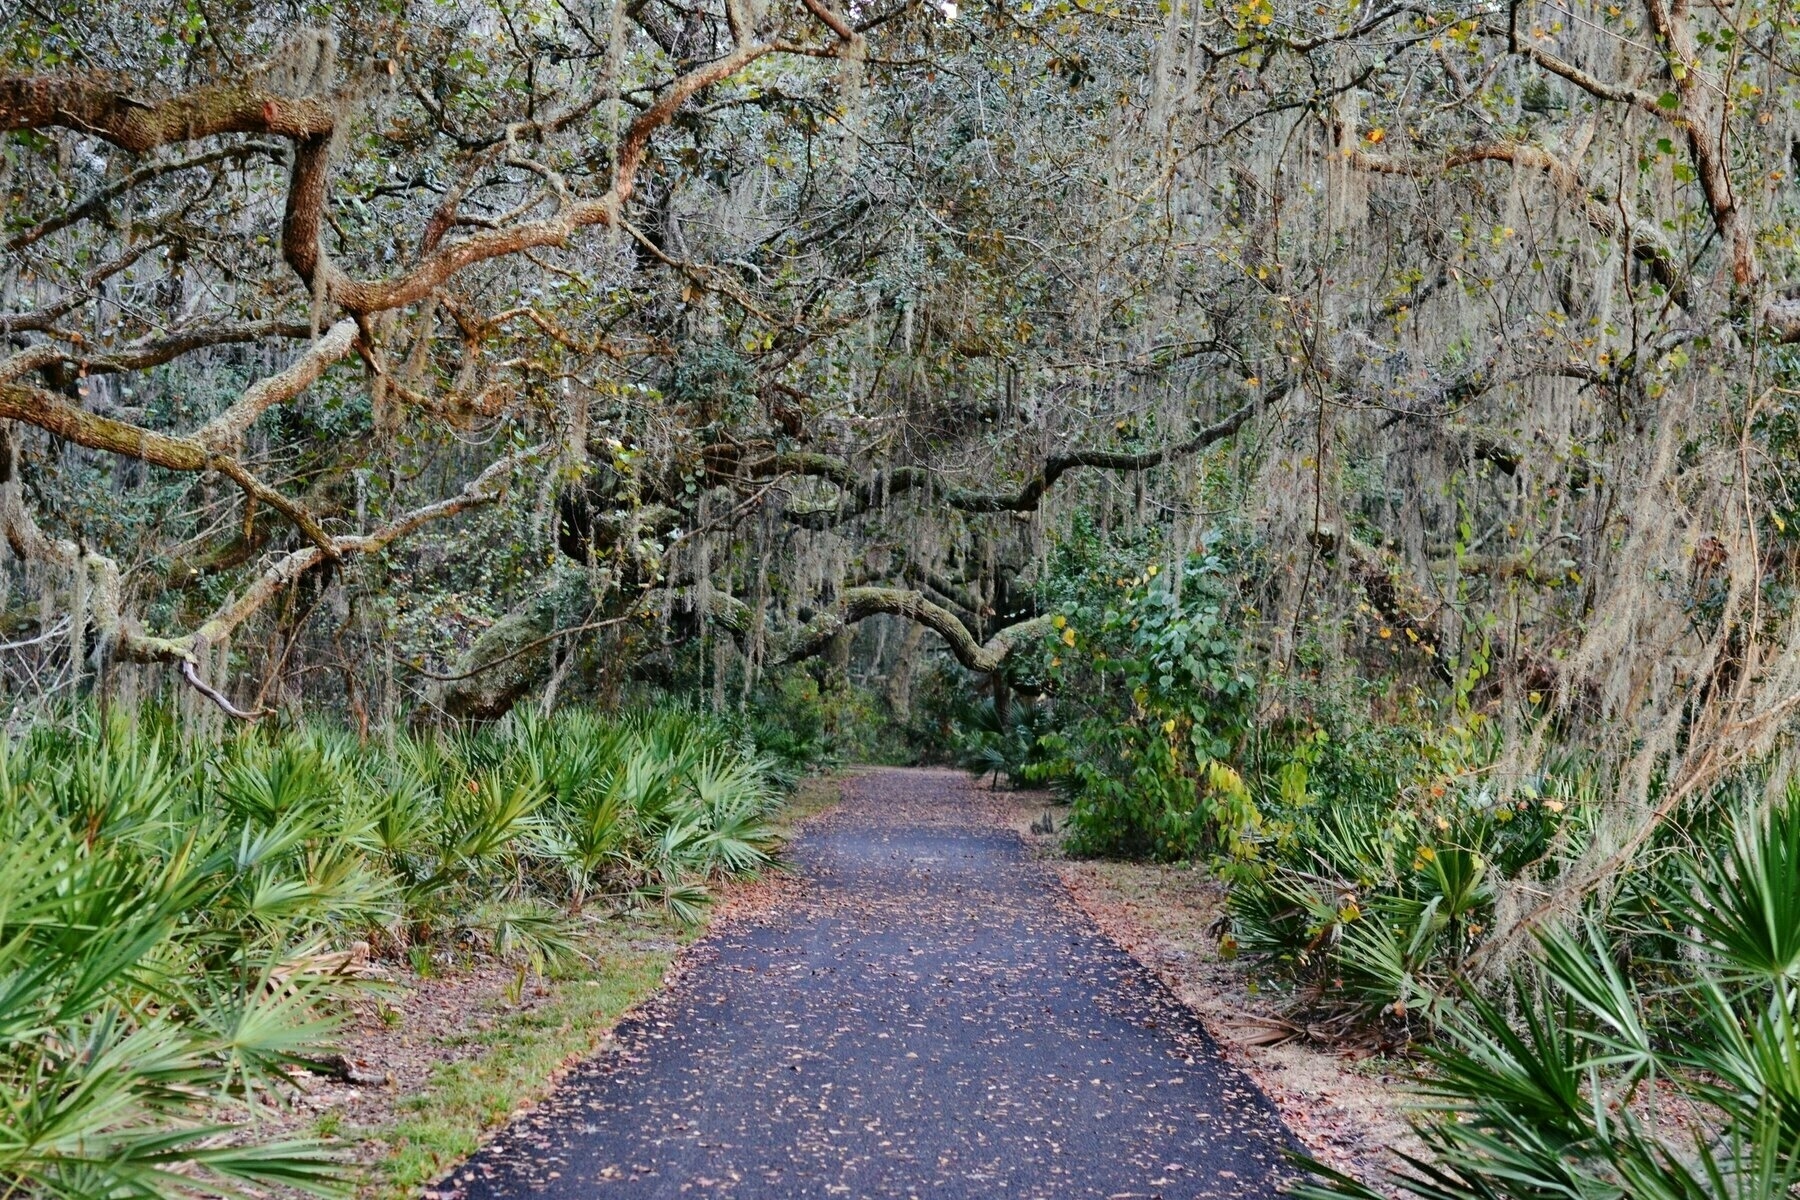 spanish moss covers live oak trees along a path